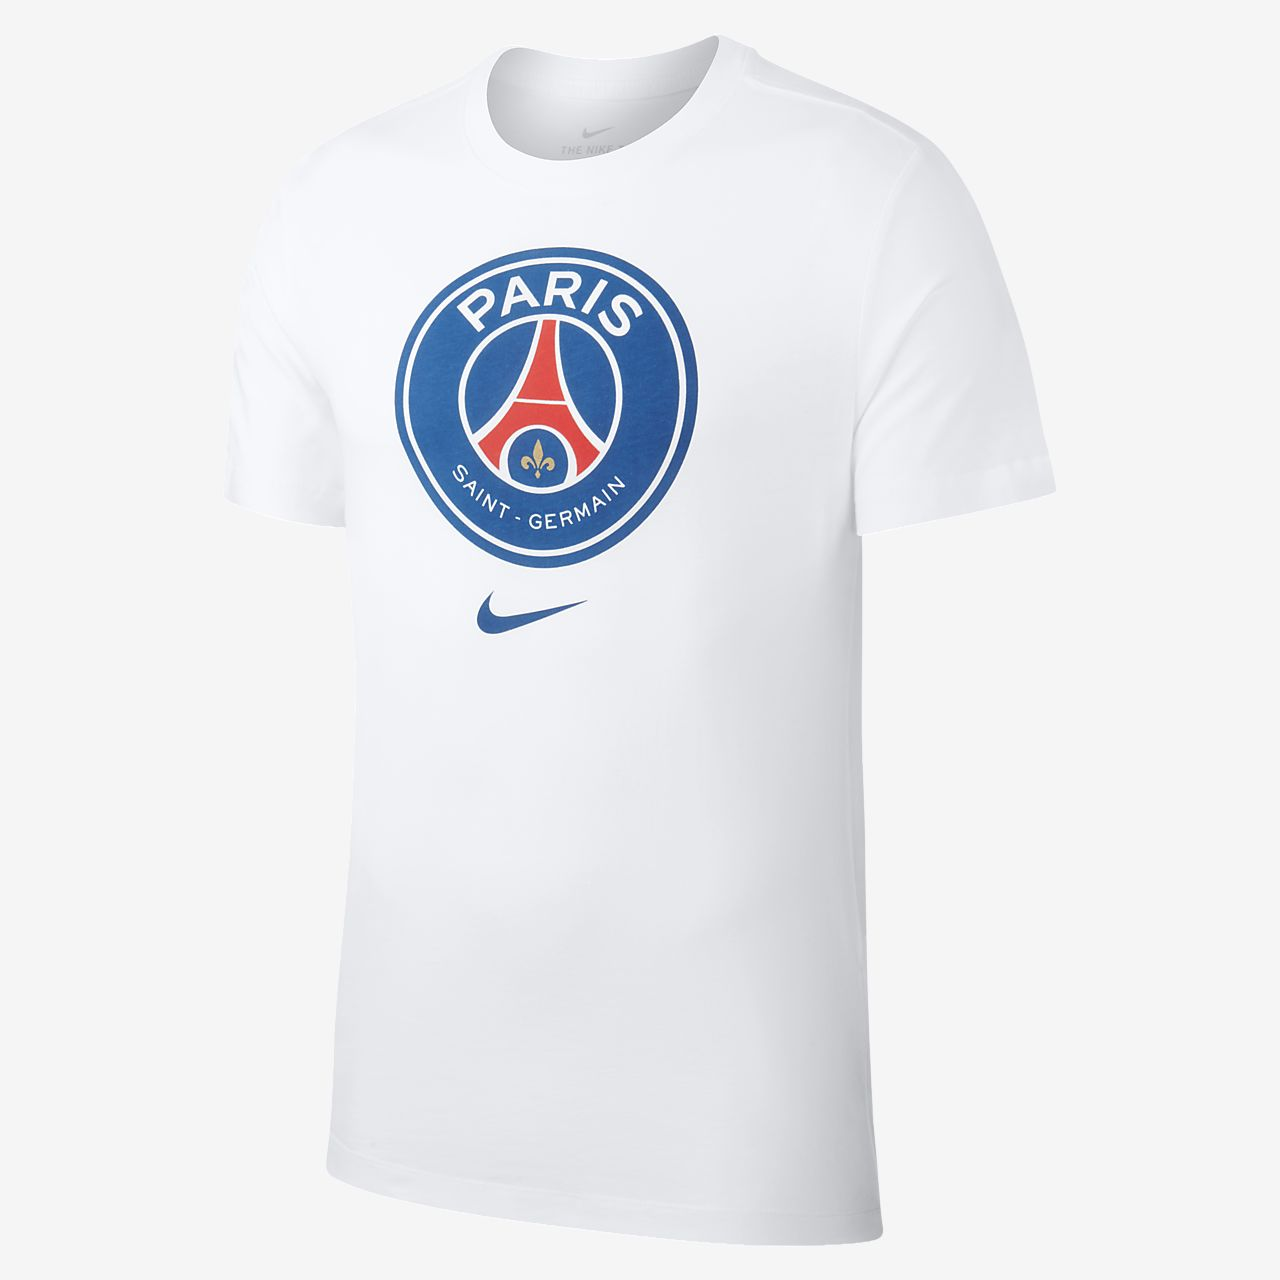 Paris Saint-Germain Herren-T-Shirt